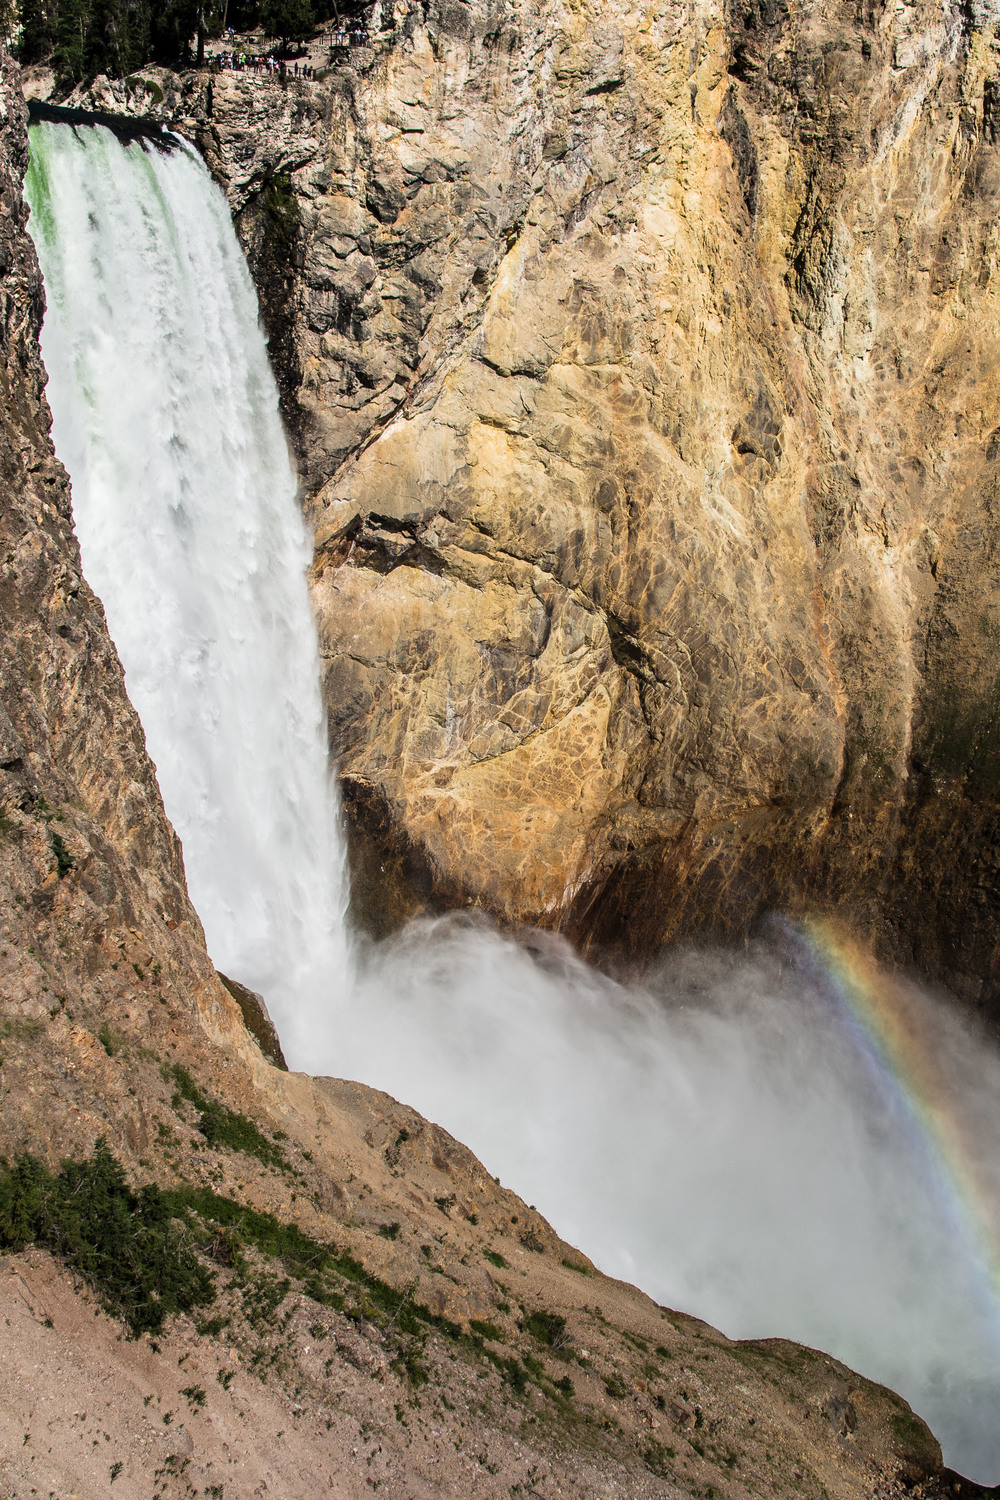 A little bit of rainbow action at the bottom of Lower Falls, South Rim, Canyon, Yellowstone N.P.